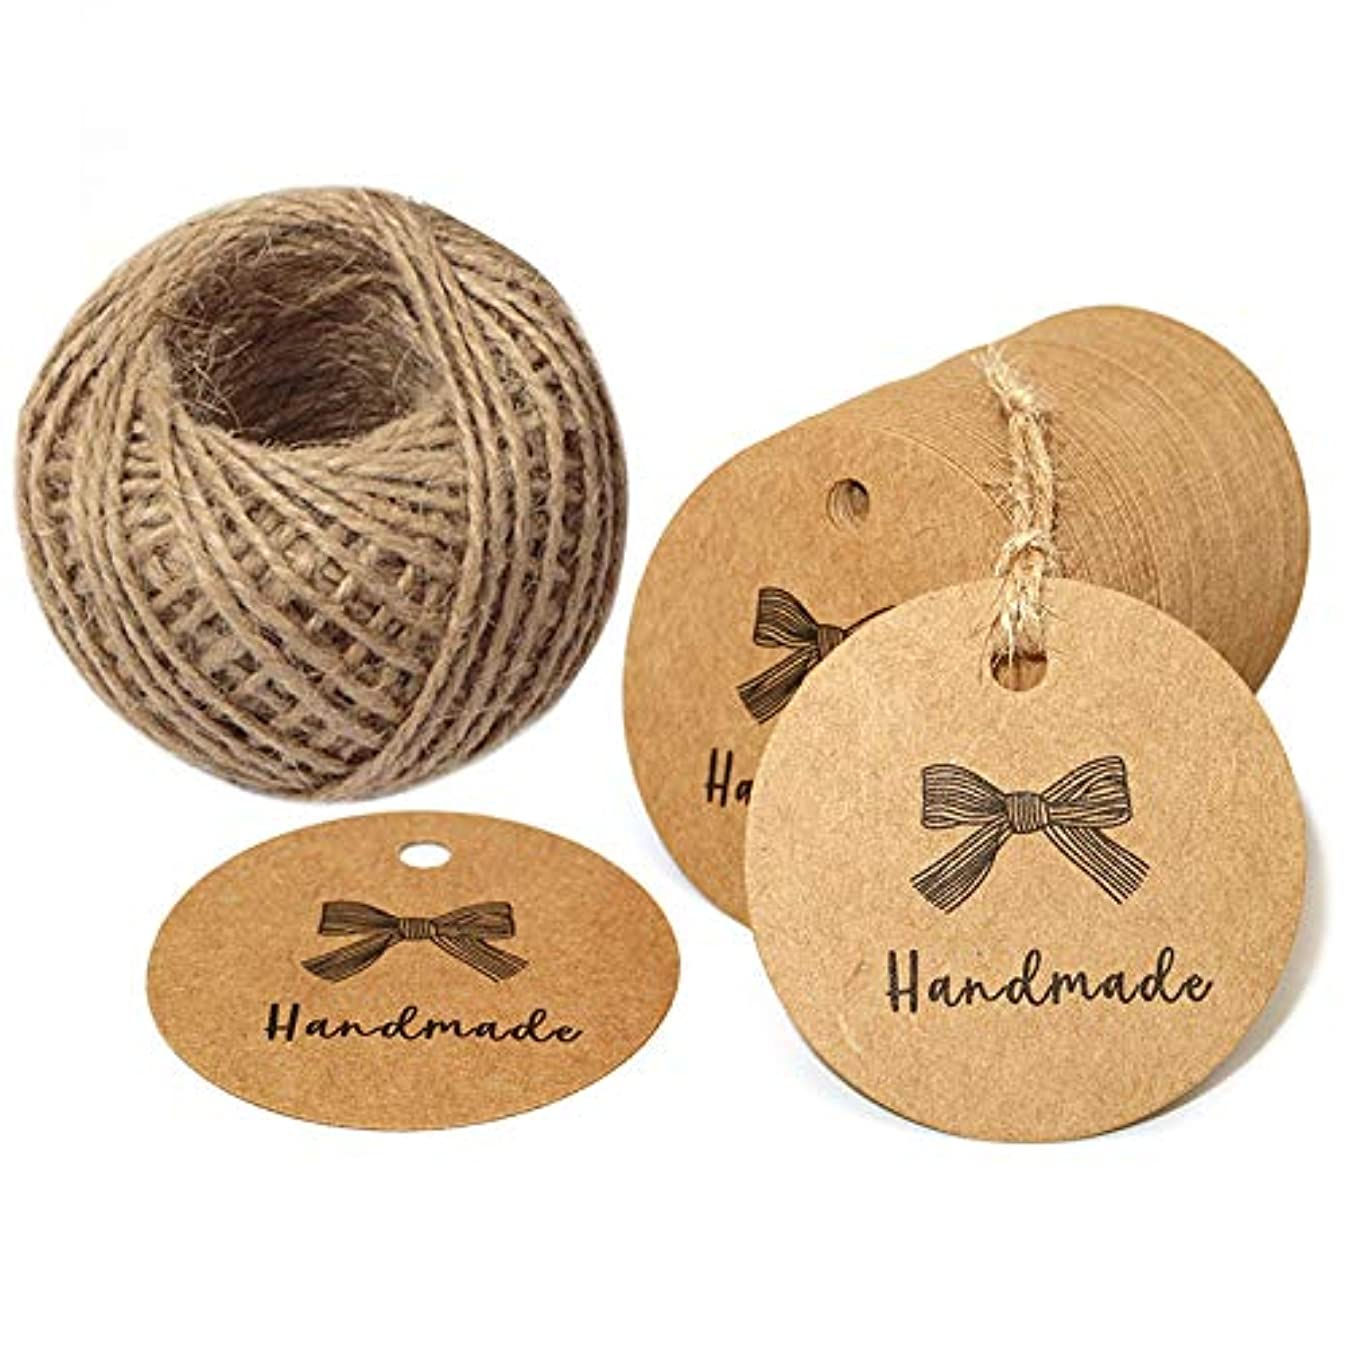 100 PCS Handmade Tags Kraft Paper Hang Tags 2'' Round Tags Craft Gift Tags with 100 Feet Natural Jute Twine Perfect for Arts & Crafts DIY Gift Decorations